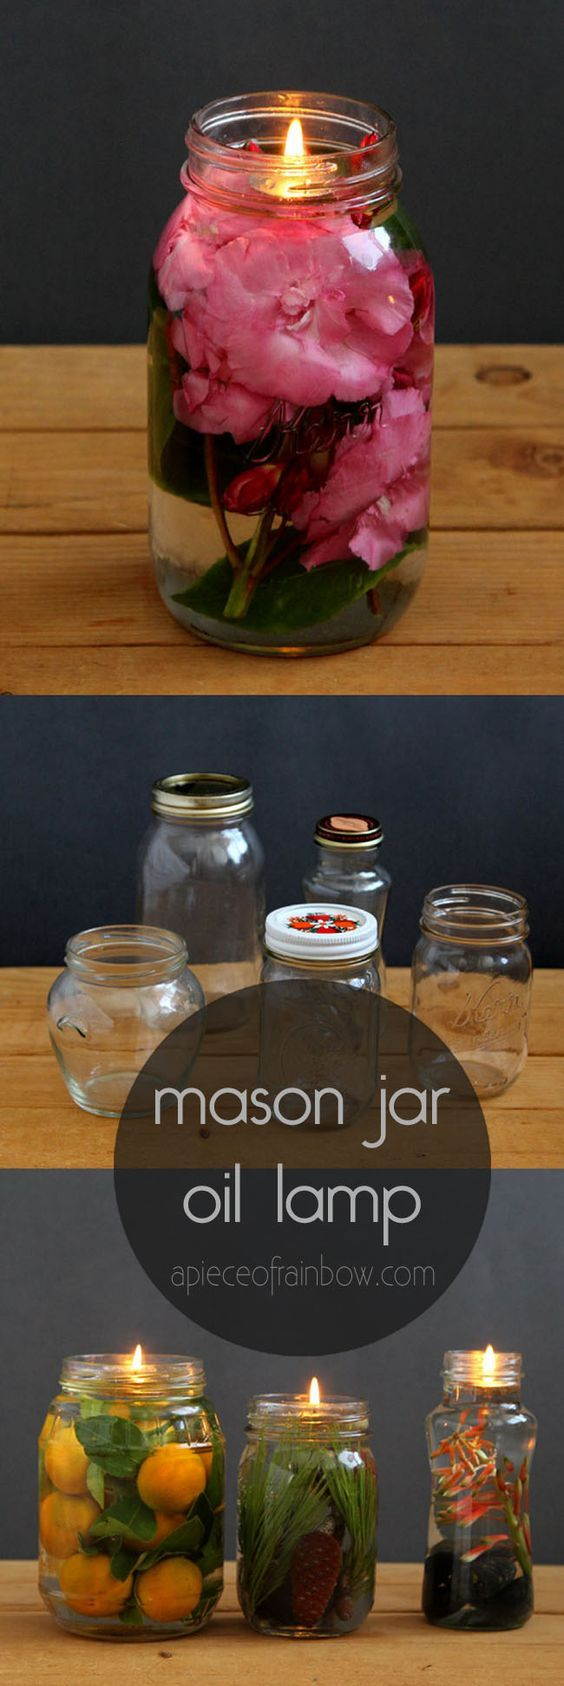 Make gorgeous oil lamp from mason jars and glass bottles. Safer than candles, it takes only 2 minutes to make using vegetable oils and water! - A Piece Of Rainbow